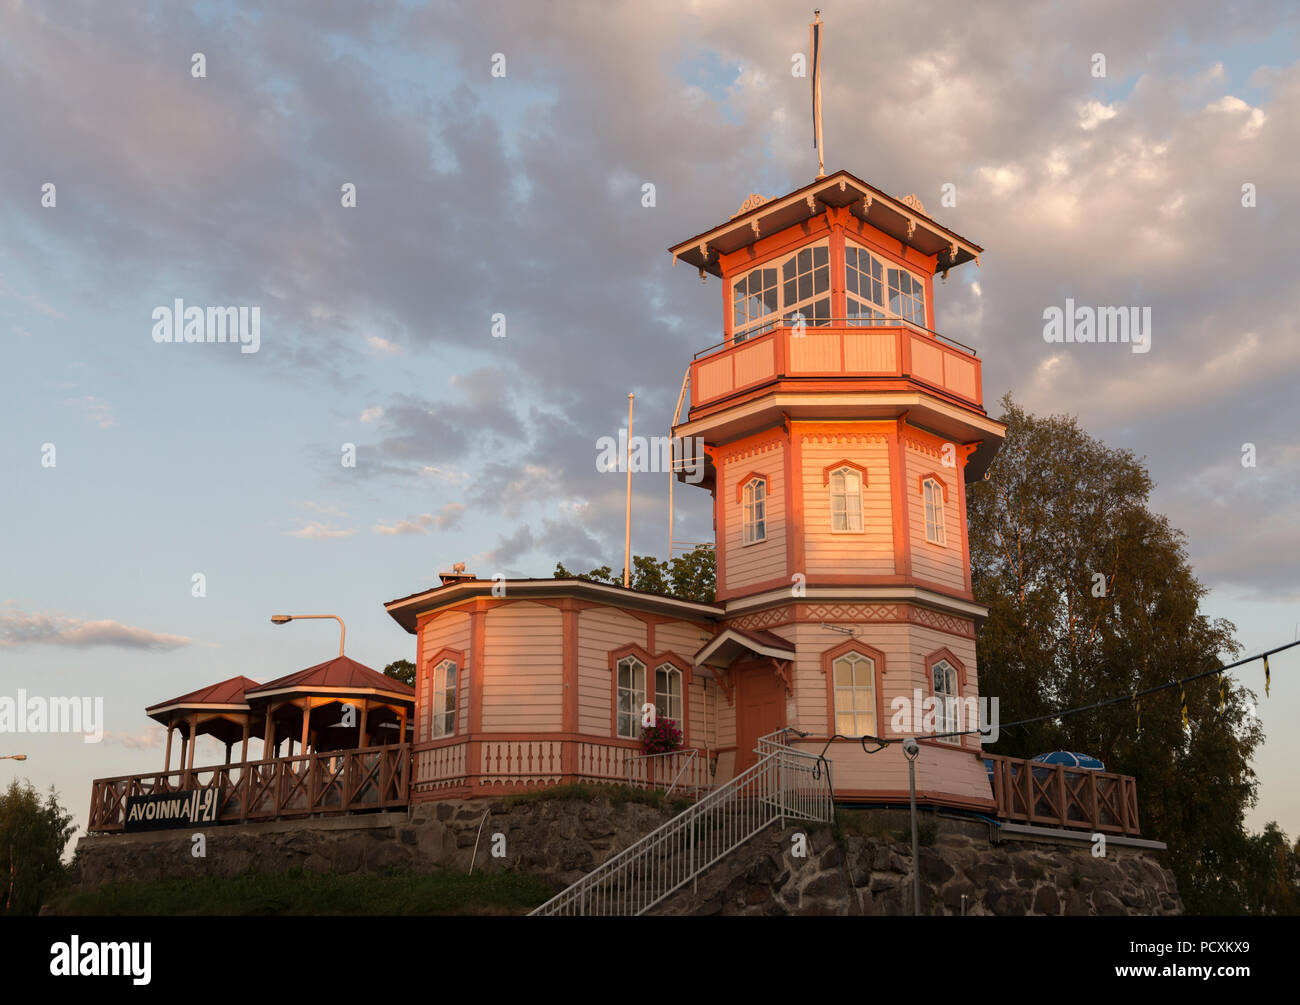 Oulu Castle, cafeteria build on the ruins of a medieval castle in Oulu, Finland - Stock Image